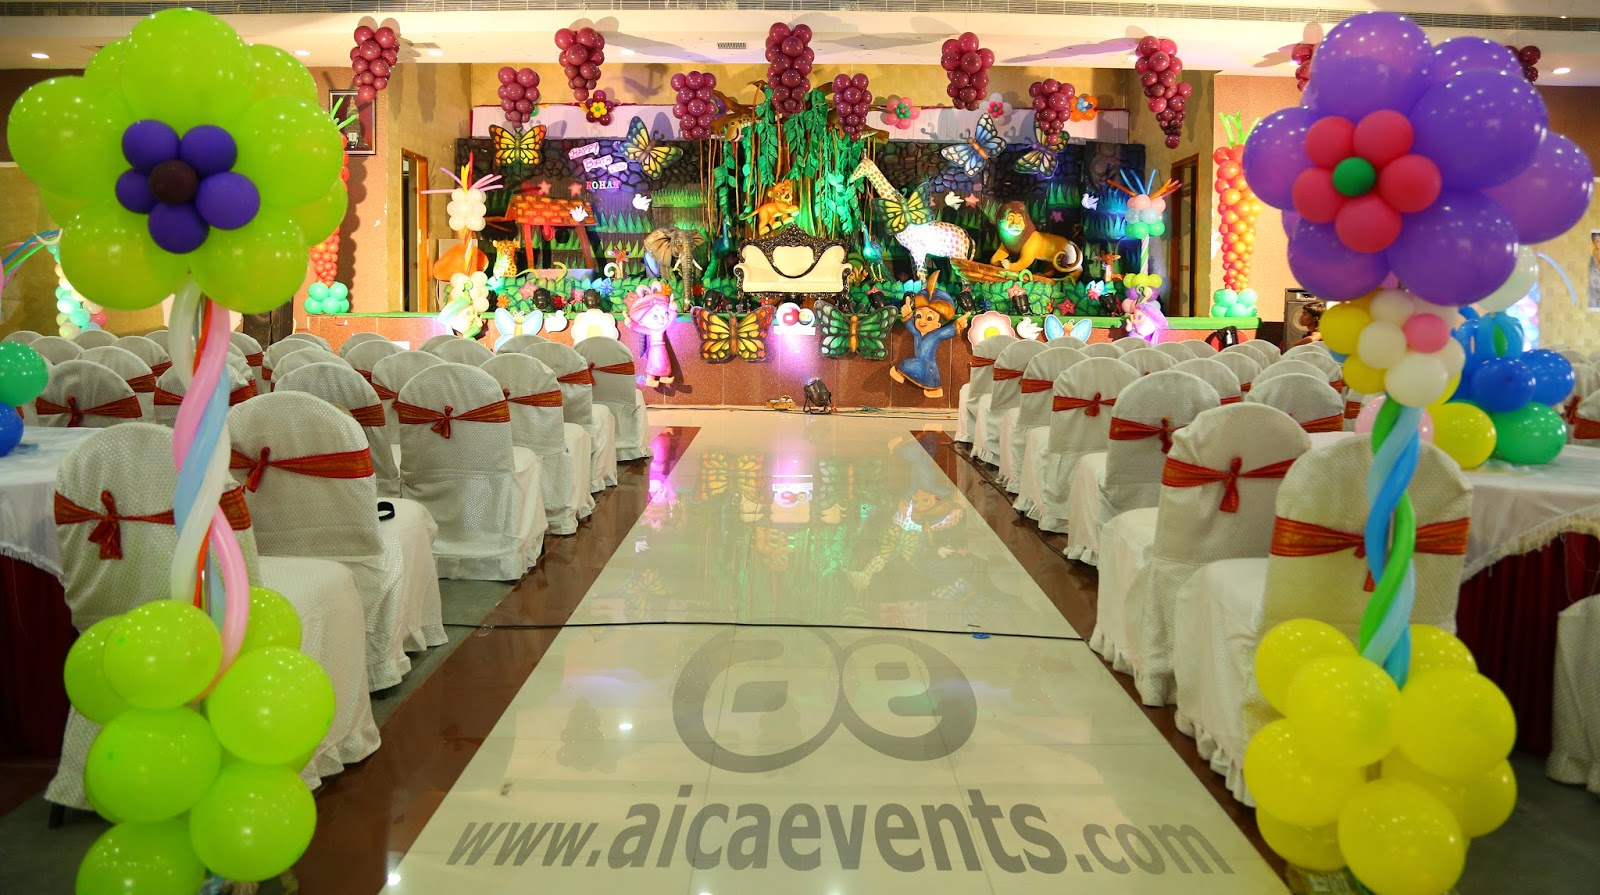 of fresh decorations jungle aicaevents theme party birthday decor